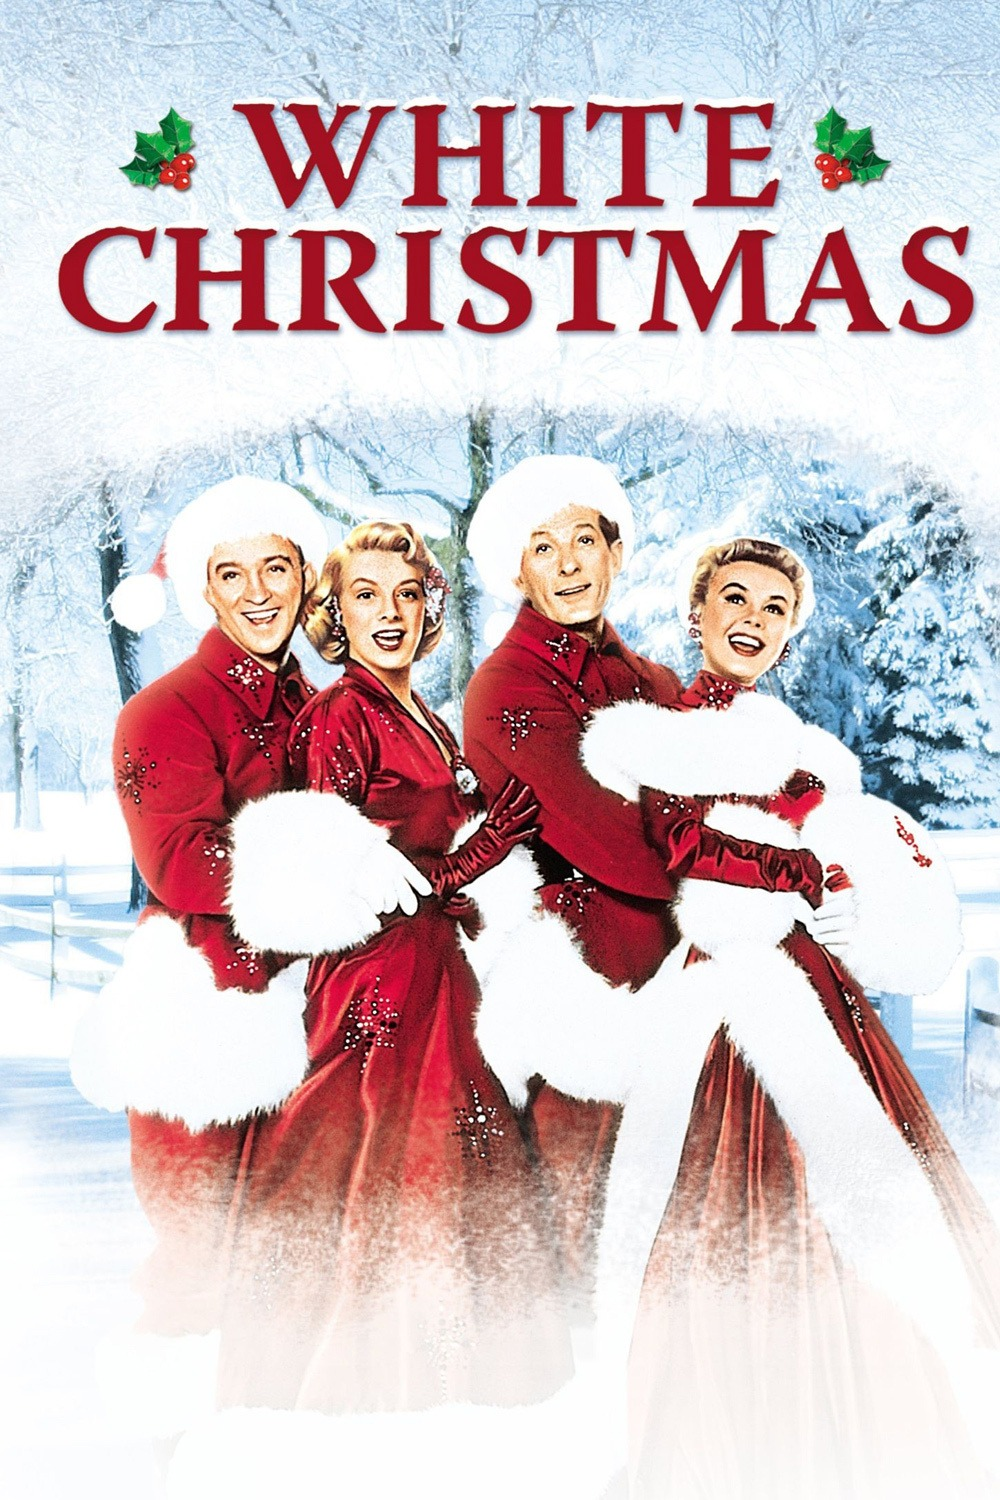 best christmas movies on netflix 10 white christmas - 10 Best Christmas Movies